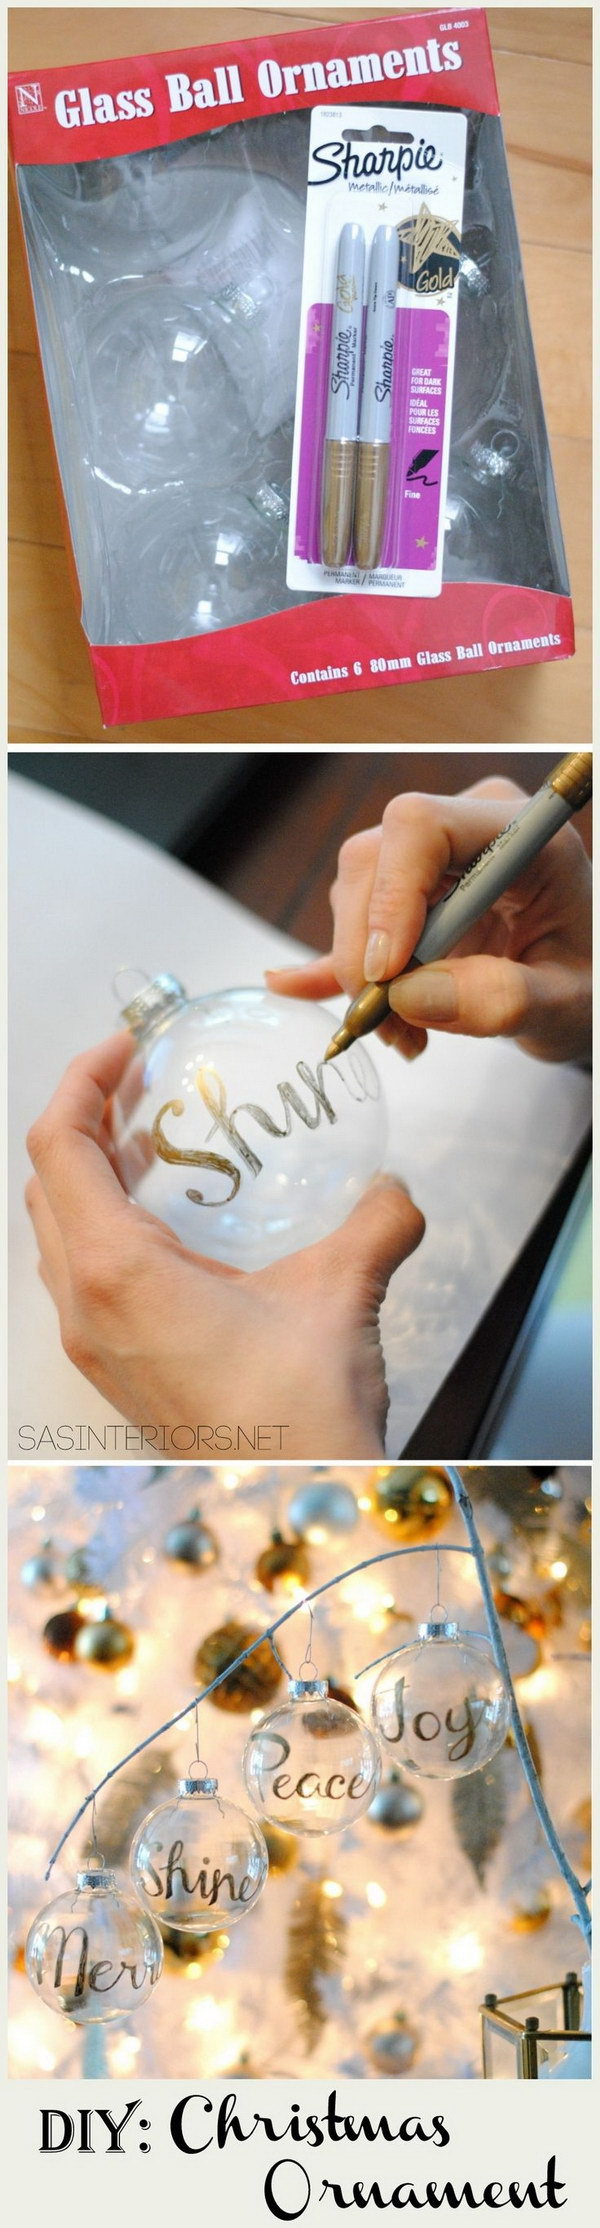 DIY Personalized Word Christmas Ornament.